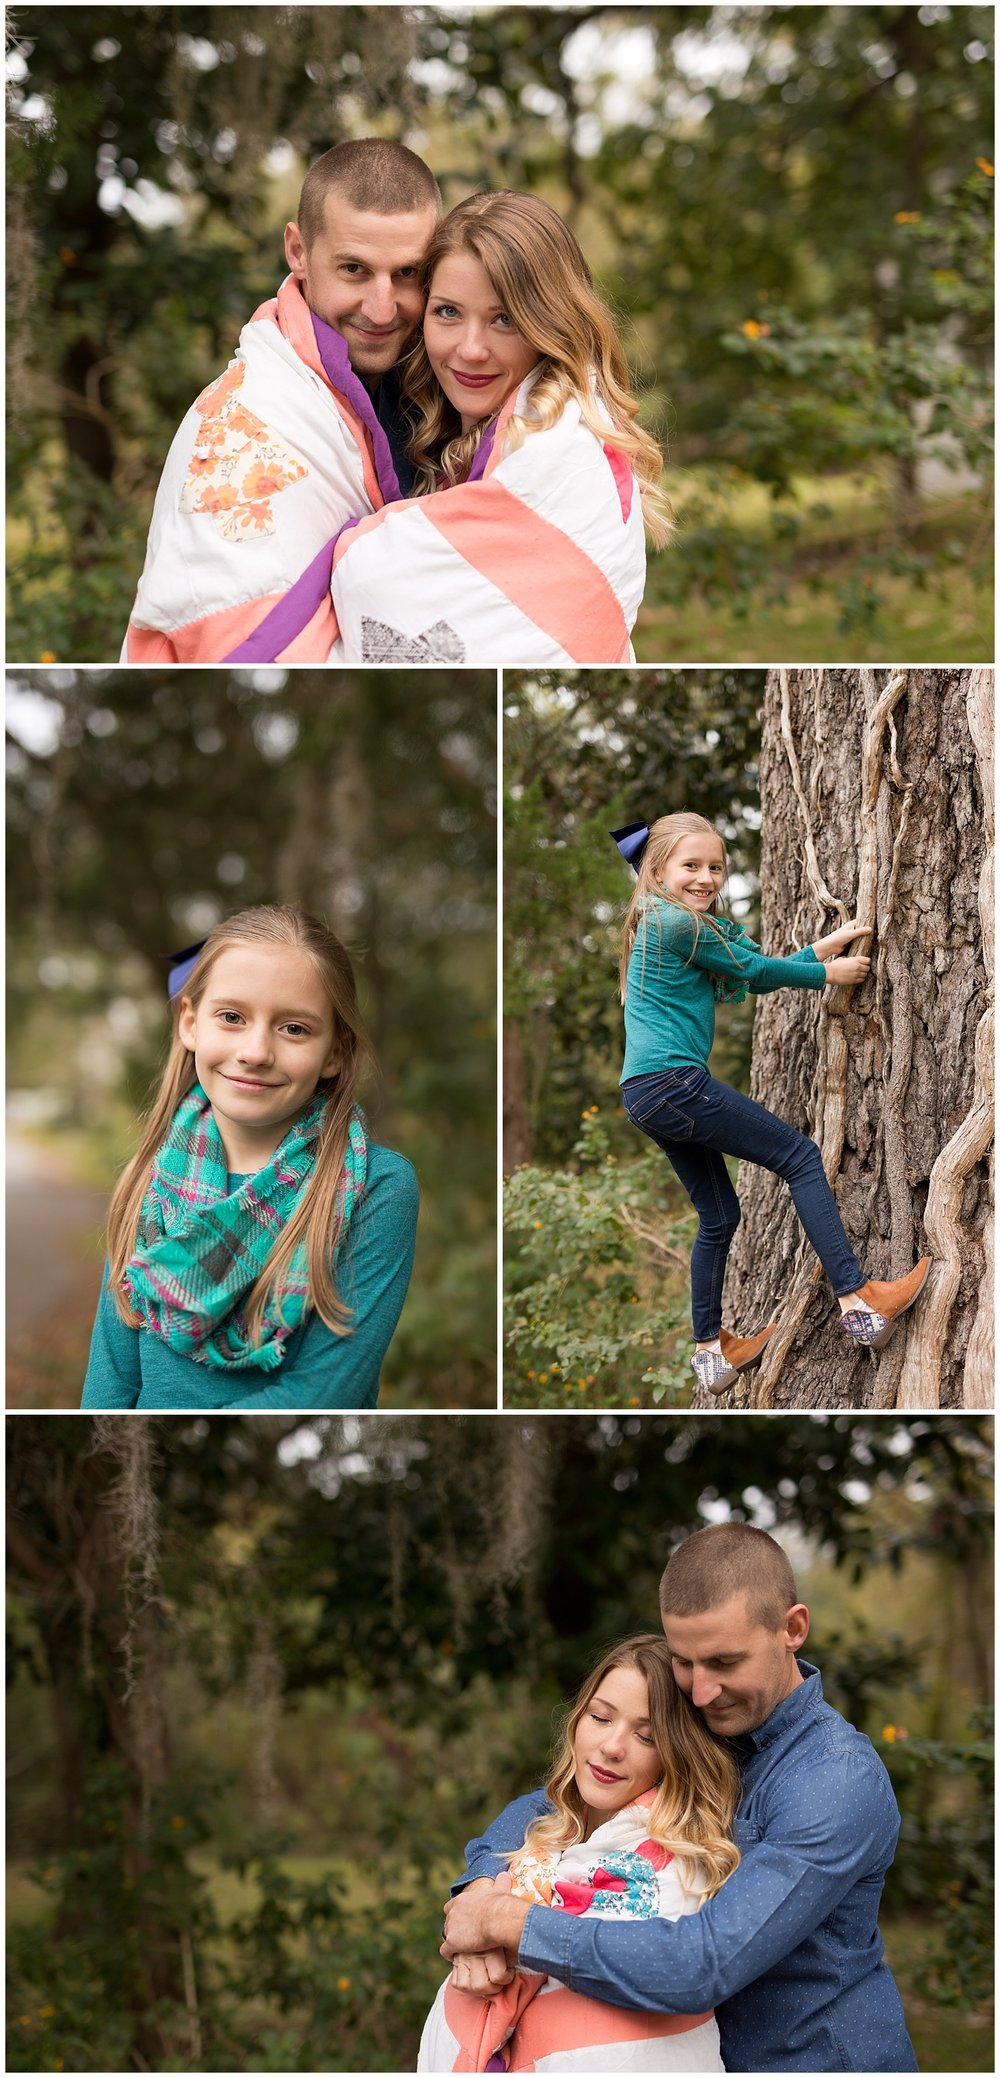 girl climbing tree, couple snuggled in quilt outdoors